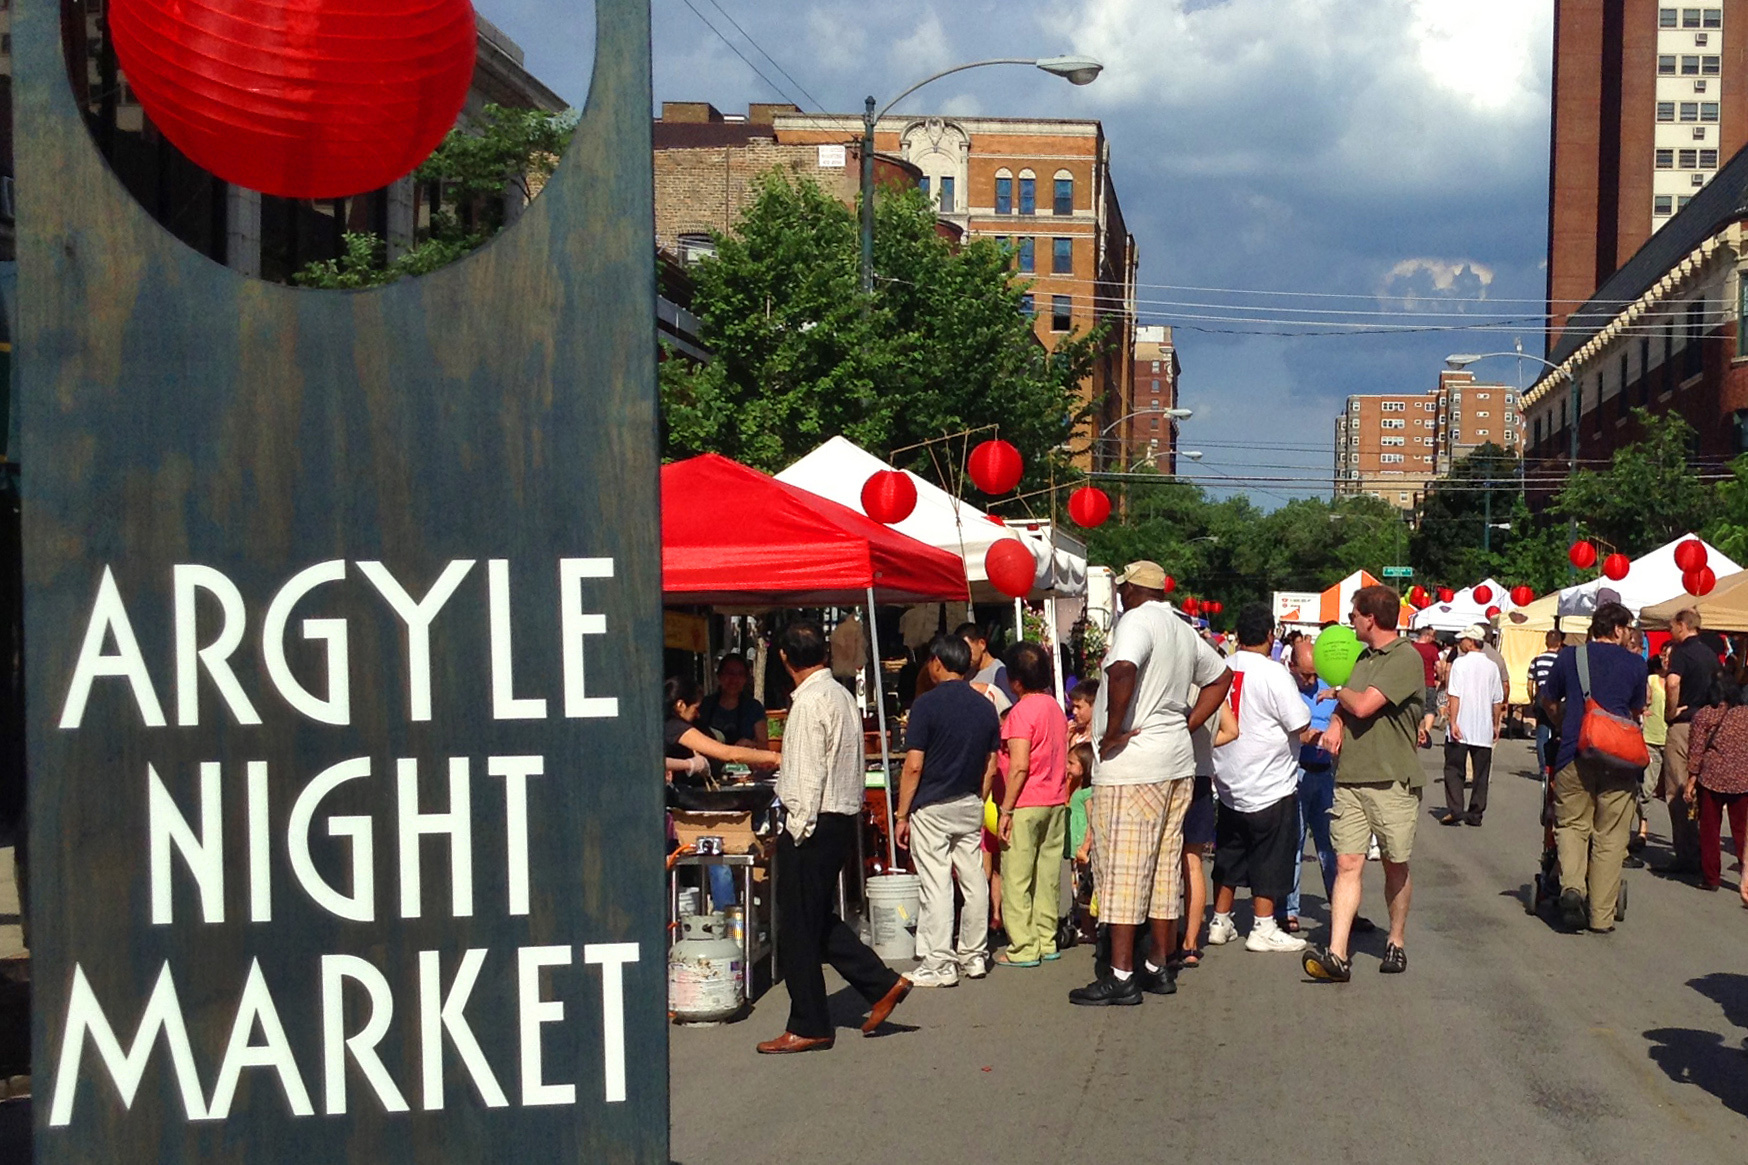 Best market: Argyle Night Market